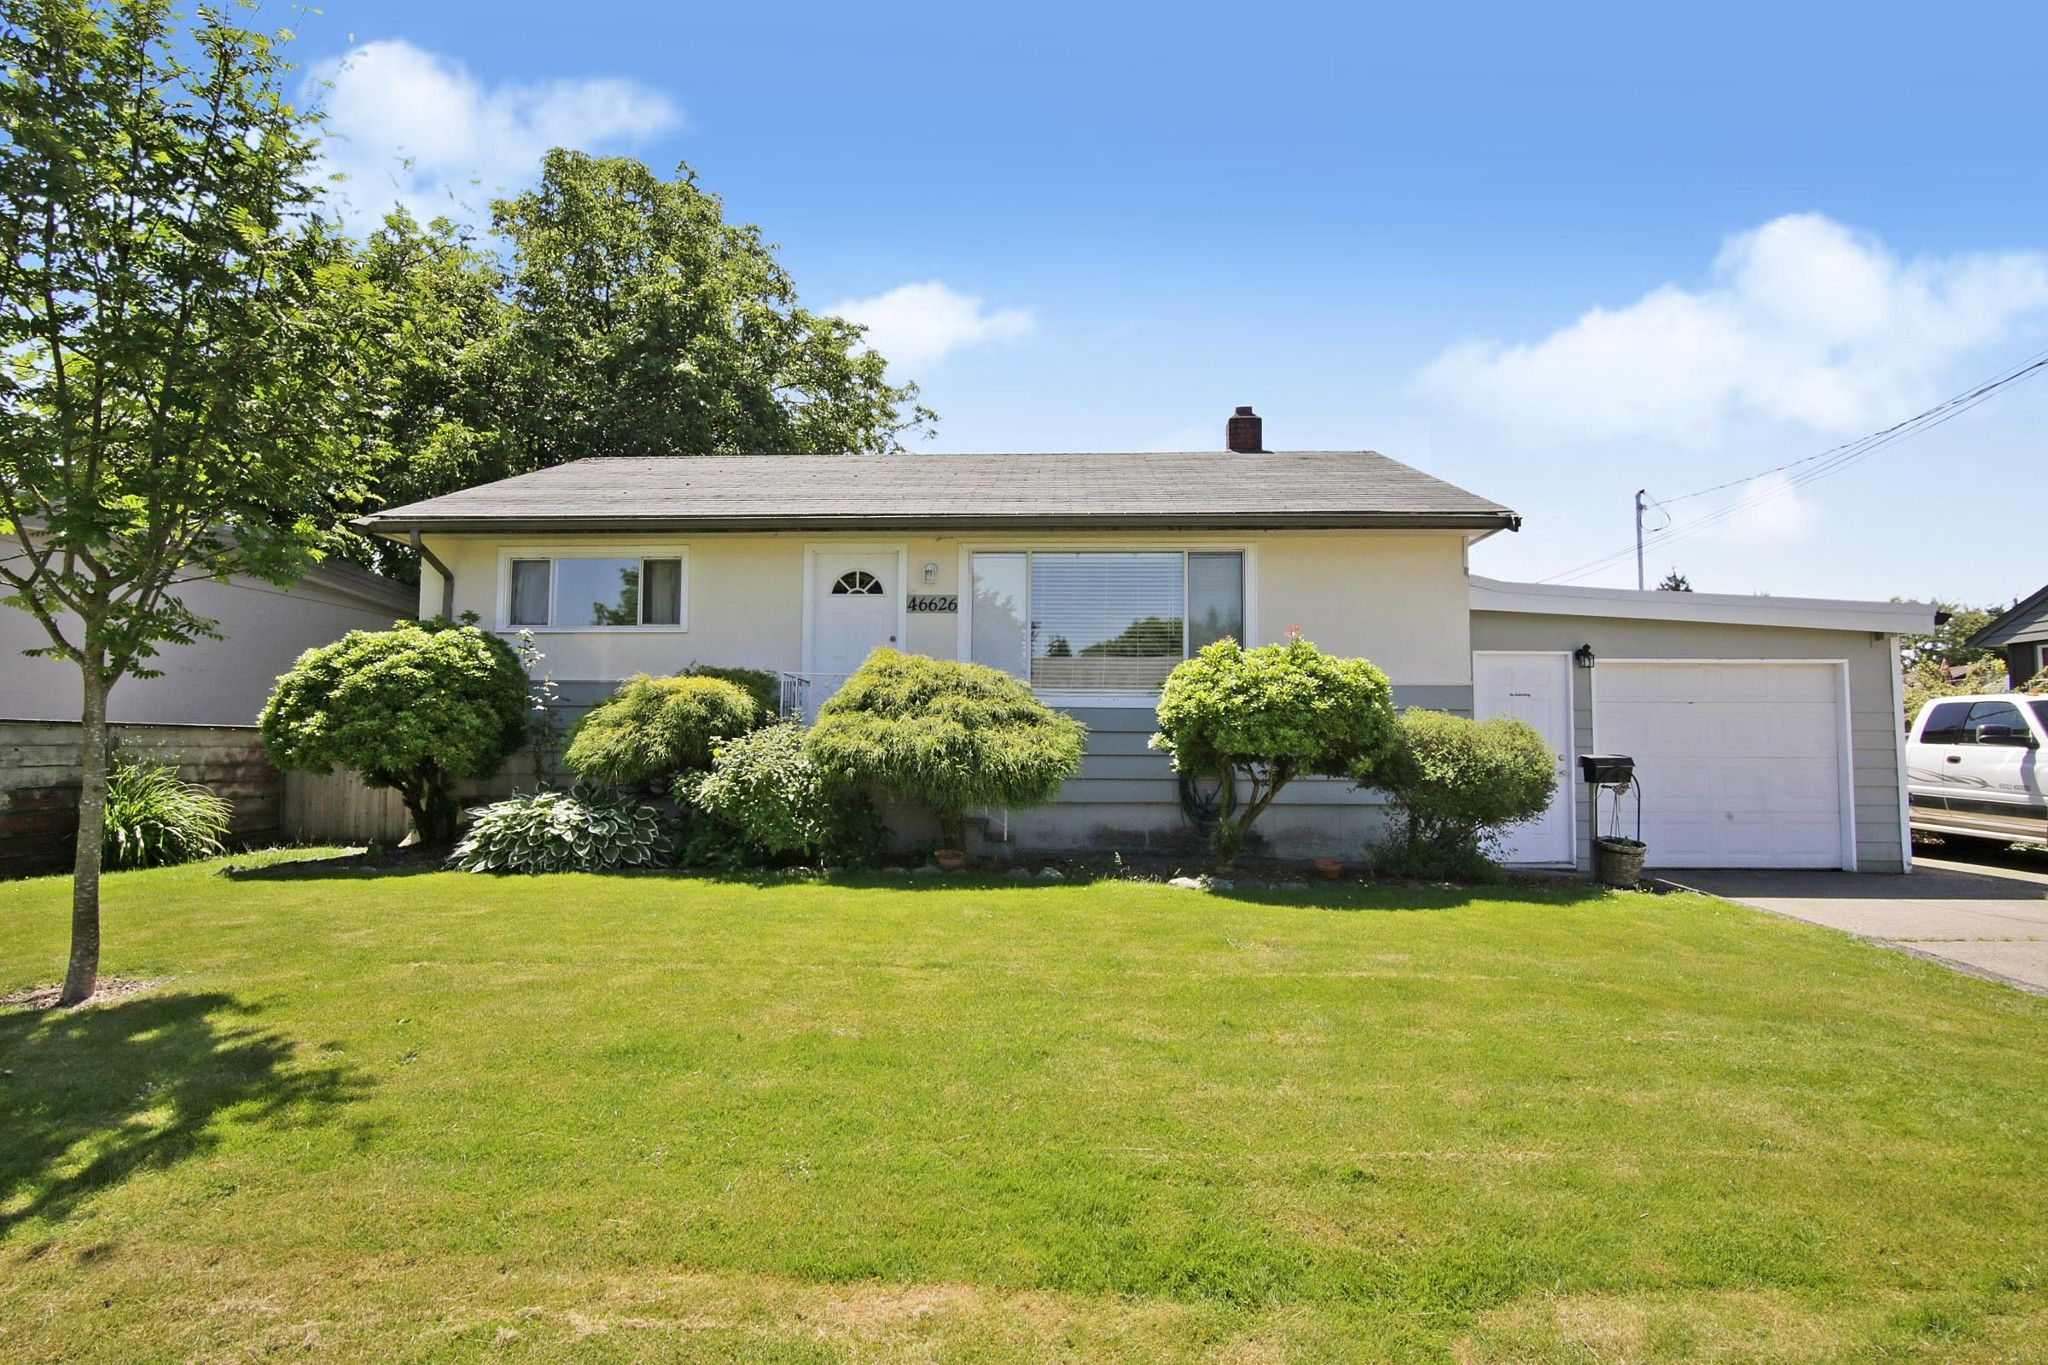 Main Photo: 46626 FRASER Avenue in Chilliwack: Chilliwack E Young-Yale House for sale : MLS®# R2588013